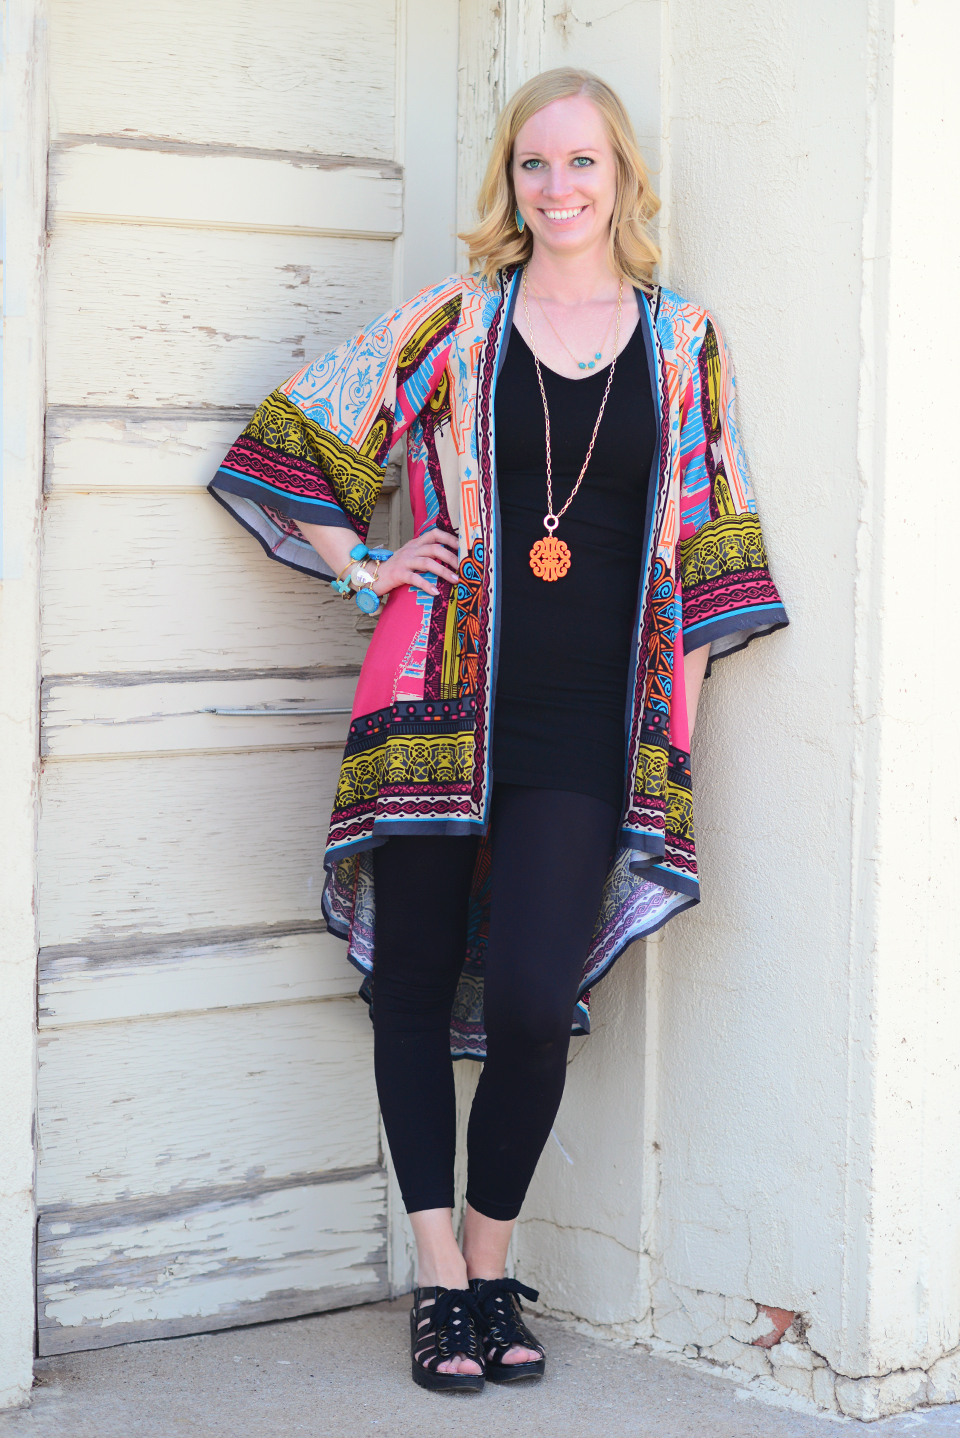 Clothes by B. Whimsy